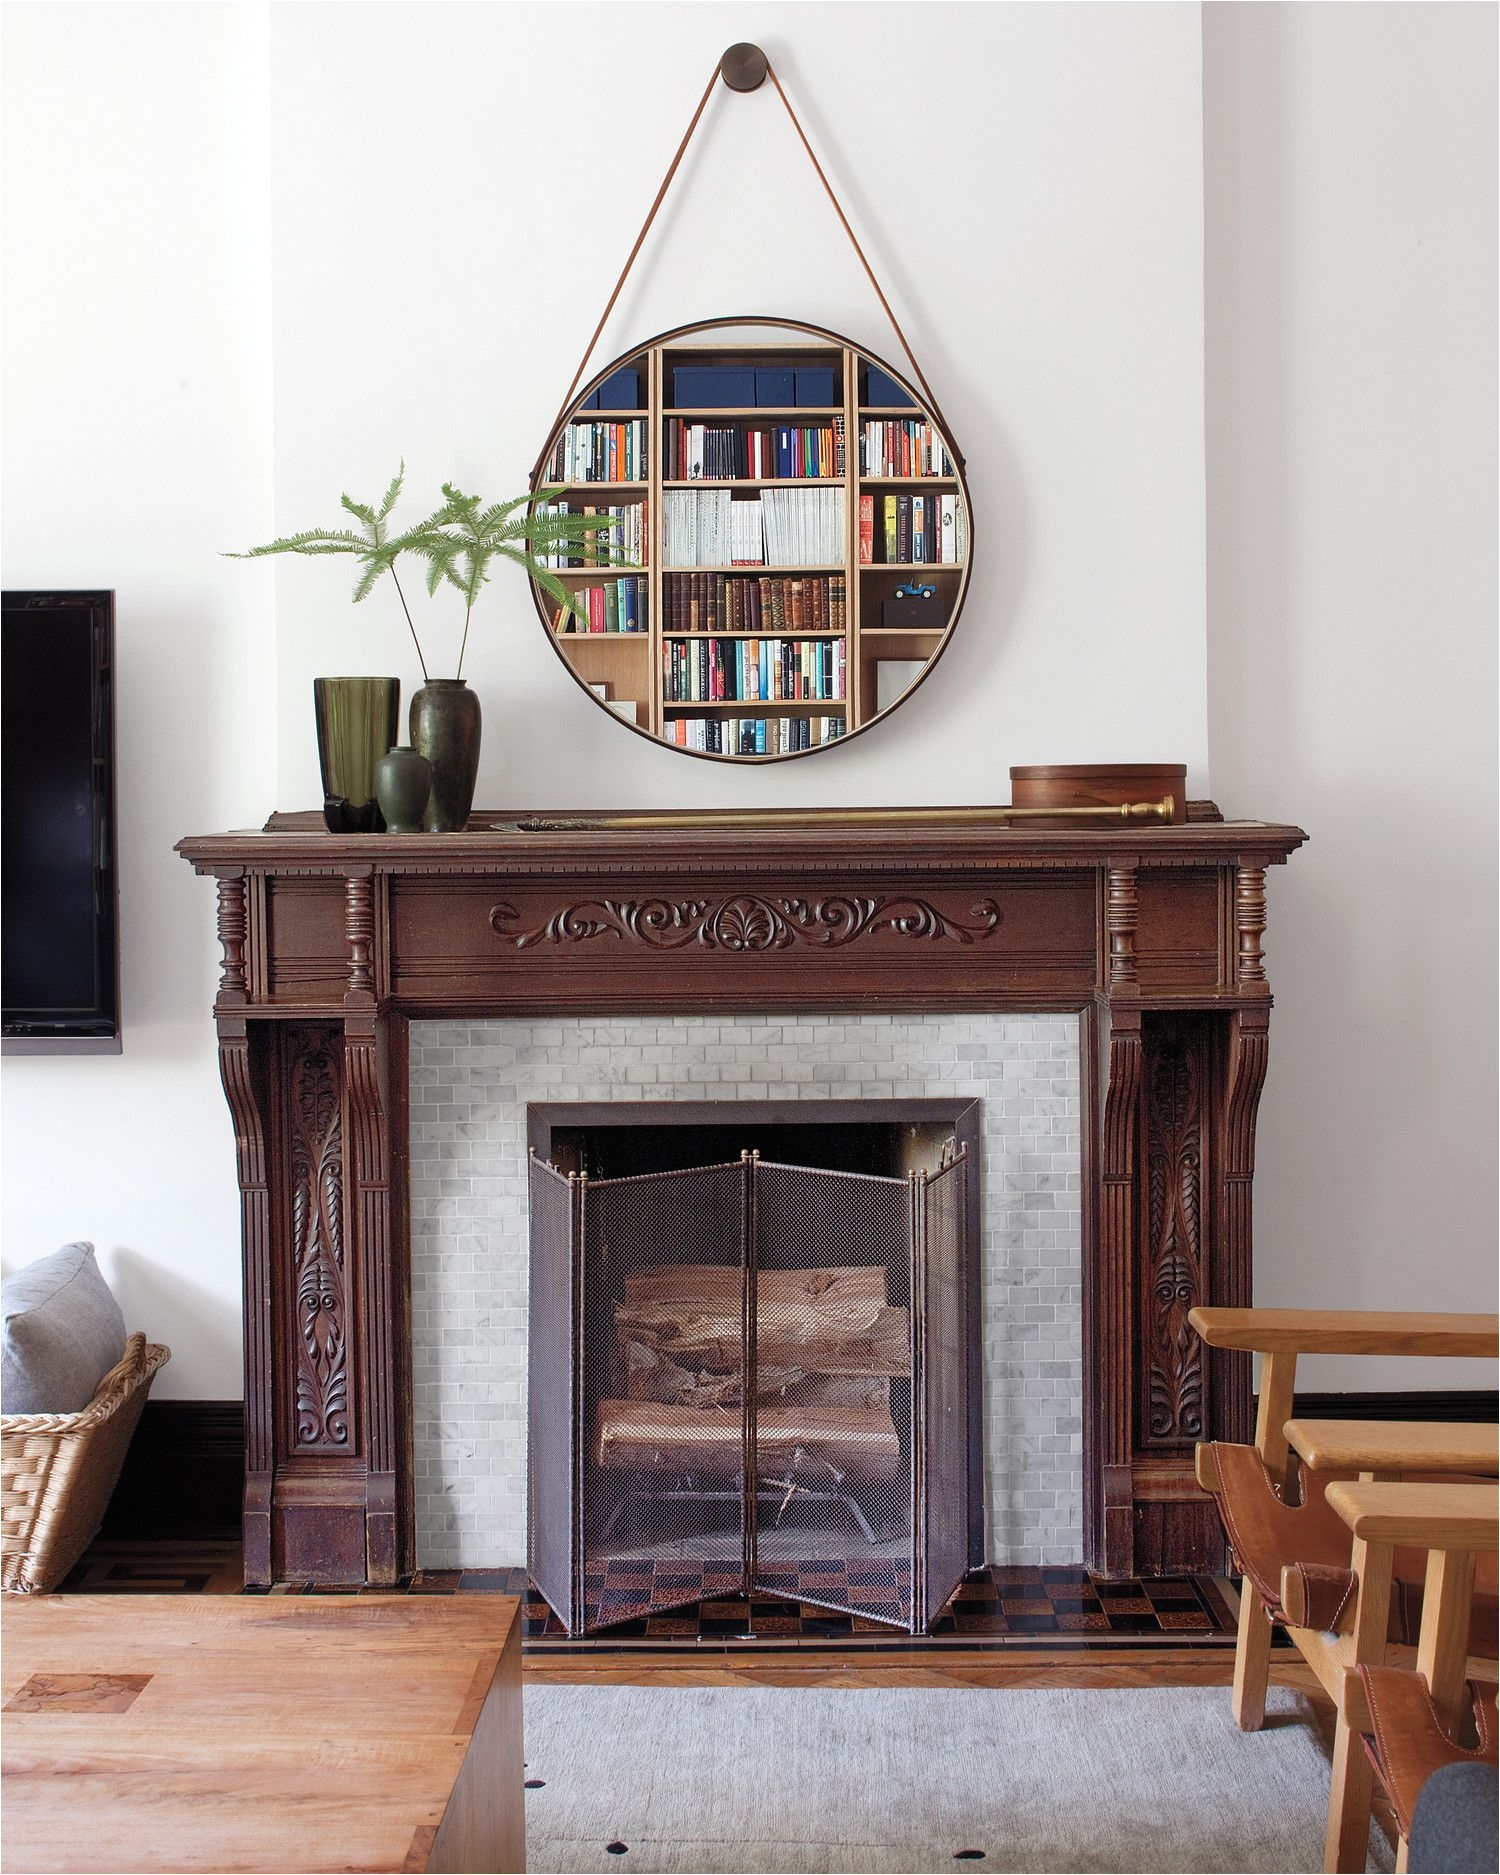 used faux fireplace for sale straight from the hearth beautiful fireplace surround ideas room of used faux fireplace for sale